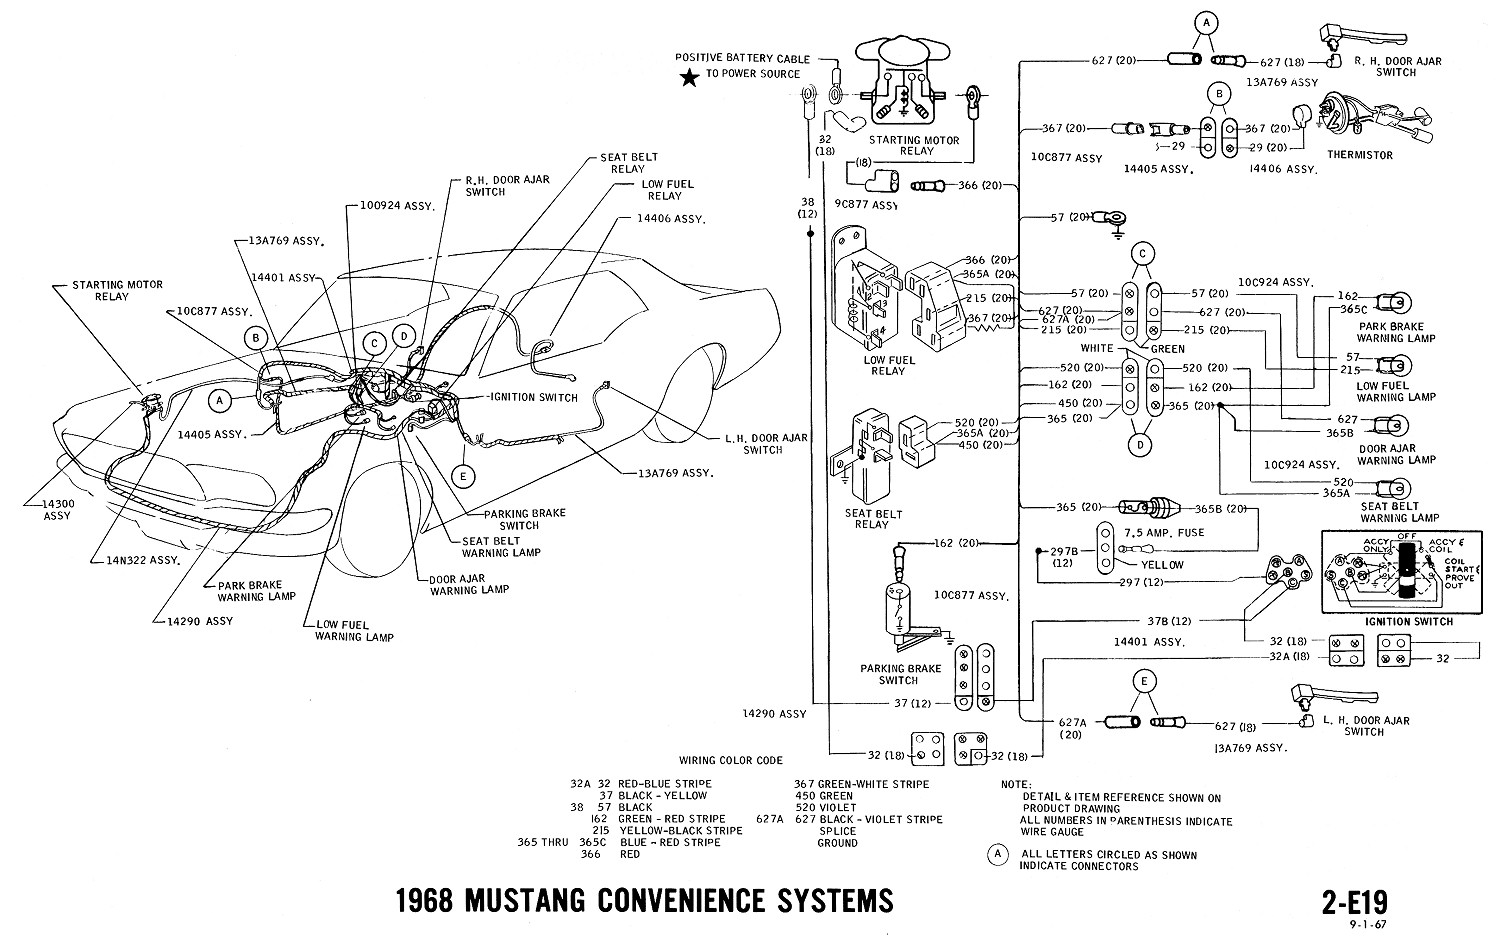 1968 Mustang Wiring Diagrams And Vacuum Schematics Average Joe 50 Ford Harness Diagram Convenience Systems